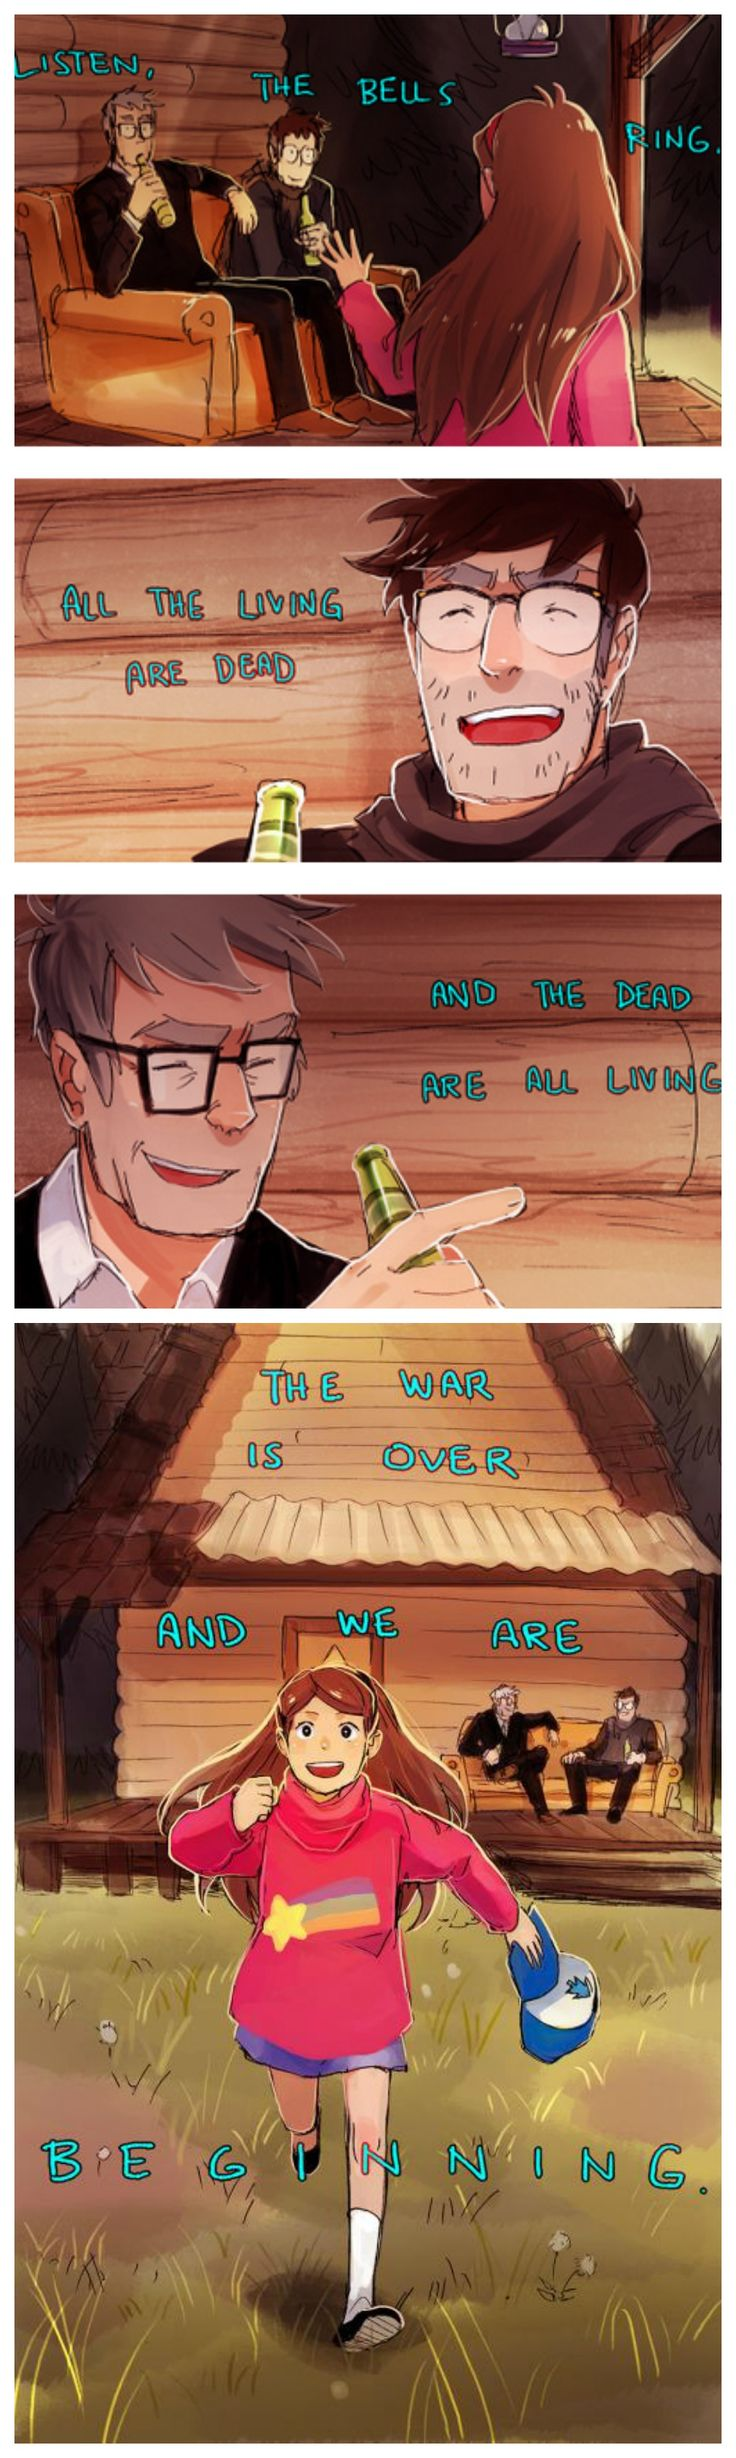 1000 Images About Gravity Falls On Pinterest Alex Hirsch Pine